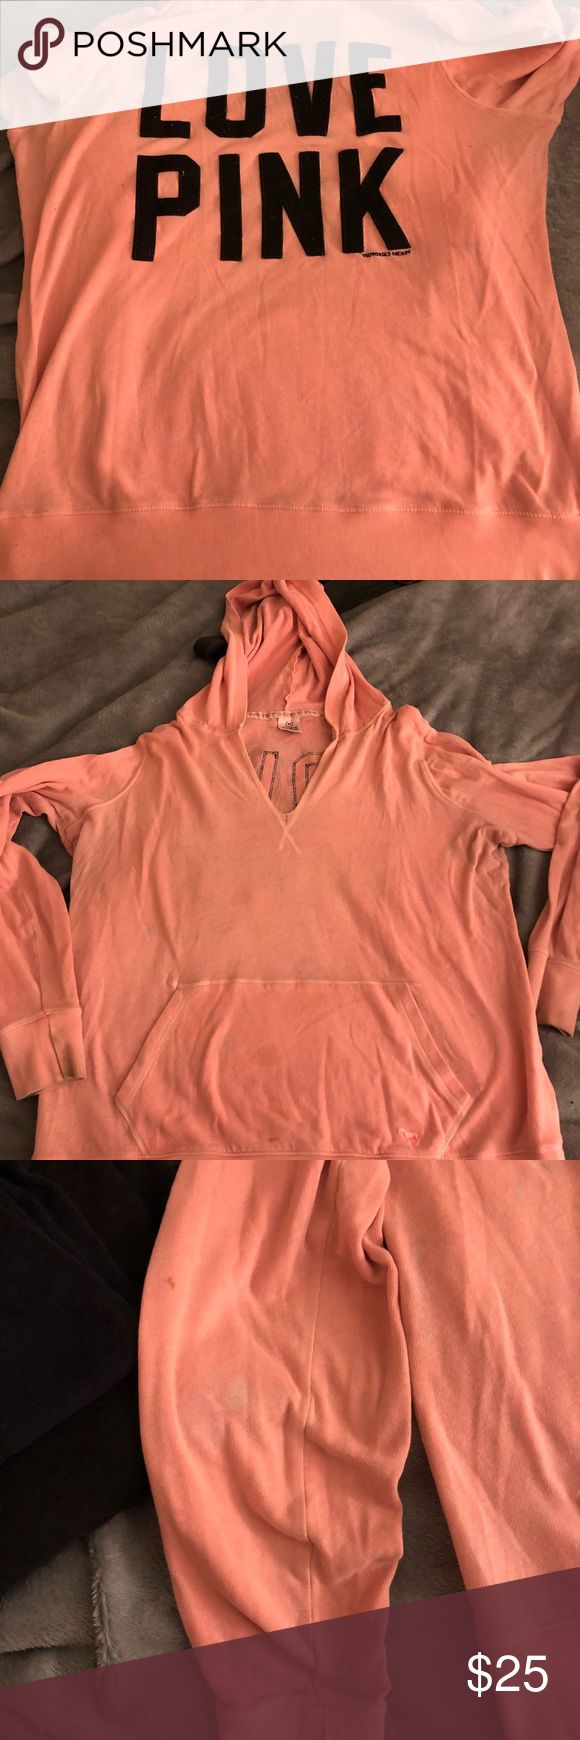 PINK size large sweat shirt Very comfy bright pink light weight hoodie. Has a few bleach stains that aren't that noticeable since it's such a light pink. Has a few other stains that can prob come out with stain remover. No rips or holes still has lots of life left. PINK Victoria's Secret Tops Sweatshirts & Hoodies